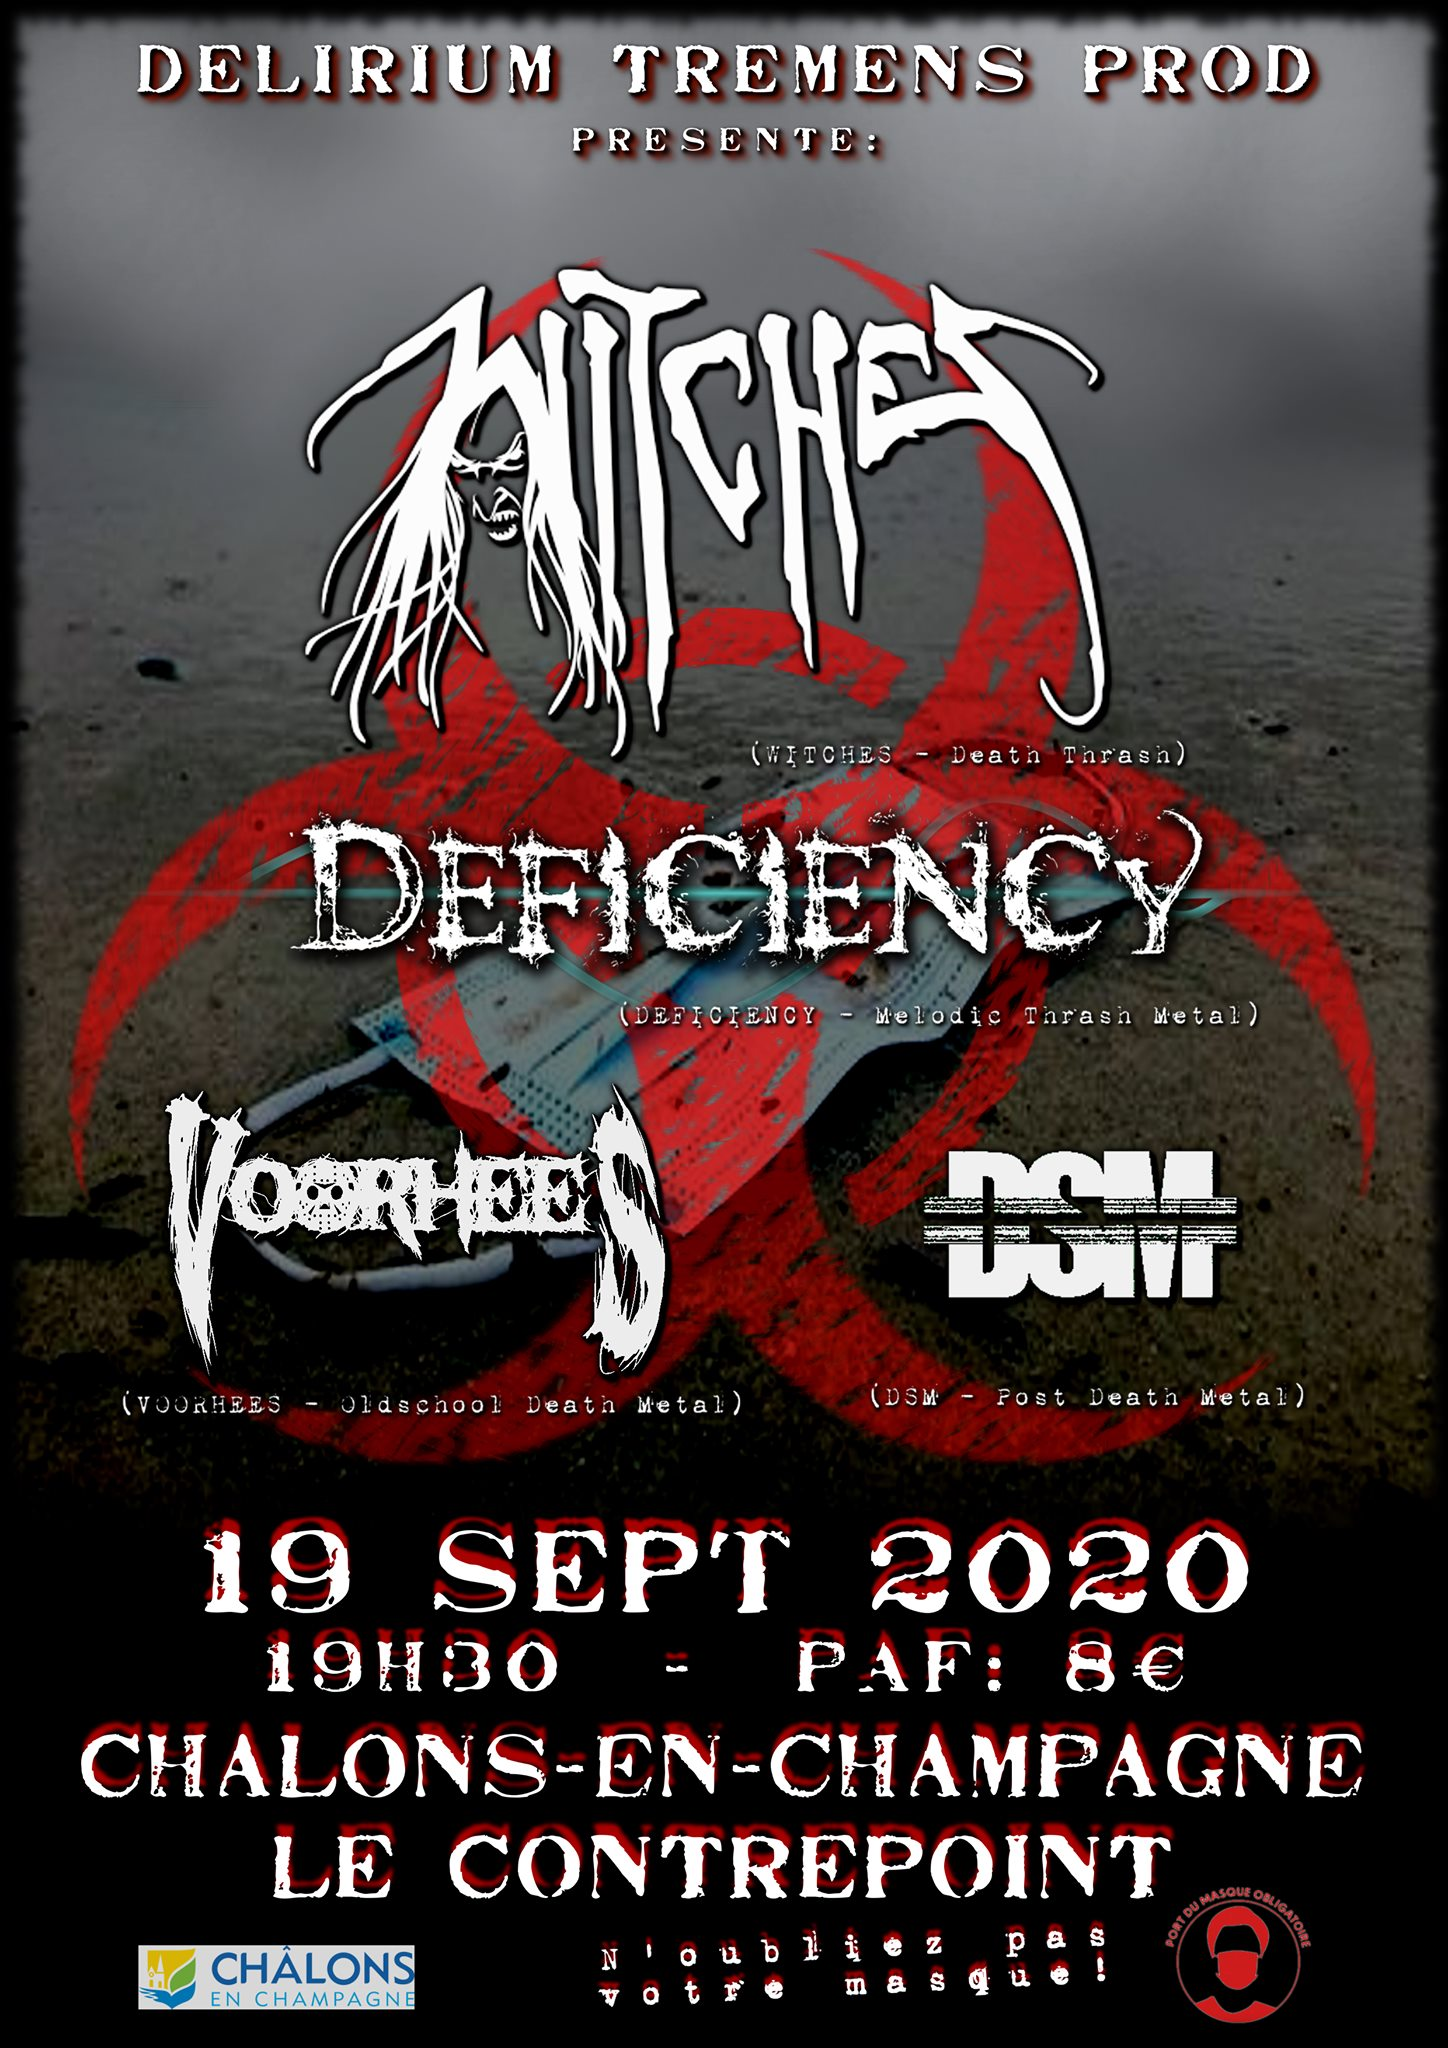 Witches flyer WITCHES + DEFICIENCY + VOORHEES + DSM  @ Night of the Masks Le Contrepoint Chalons en Champagne